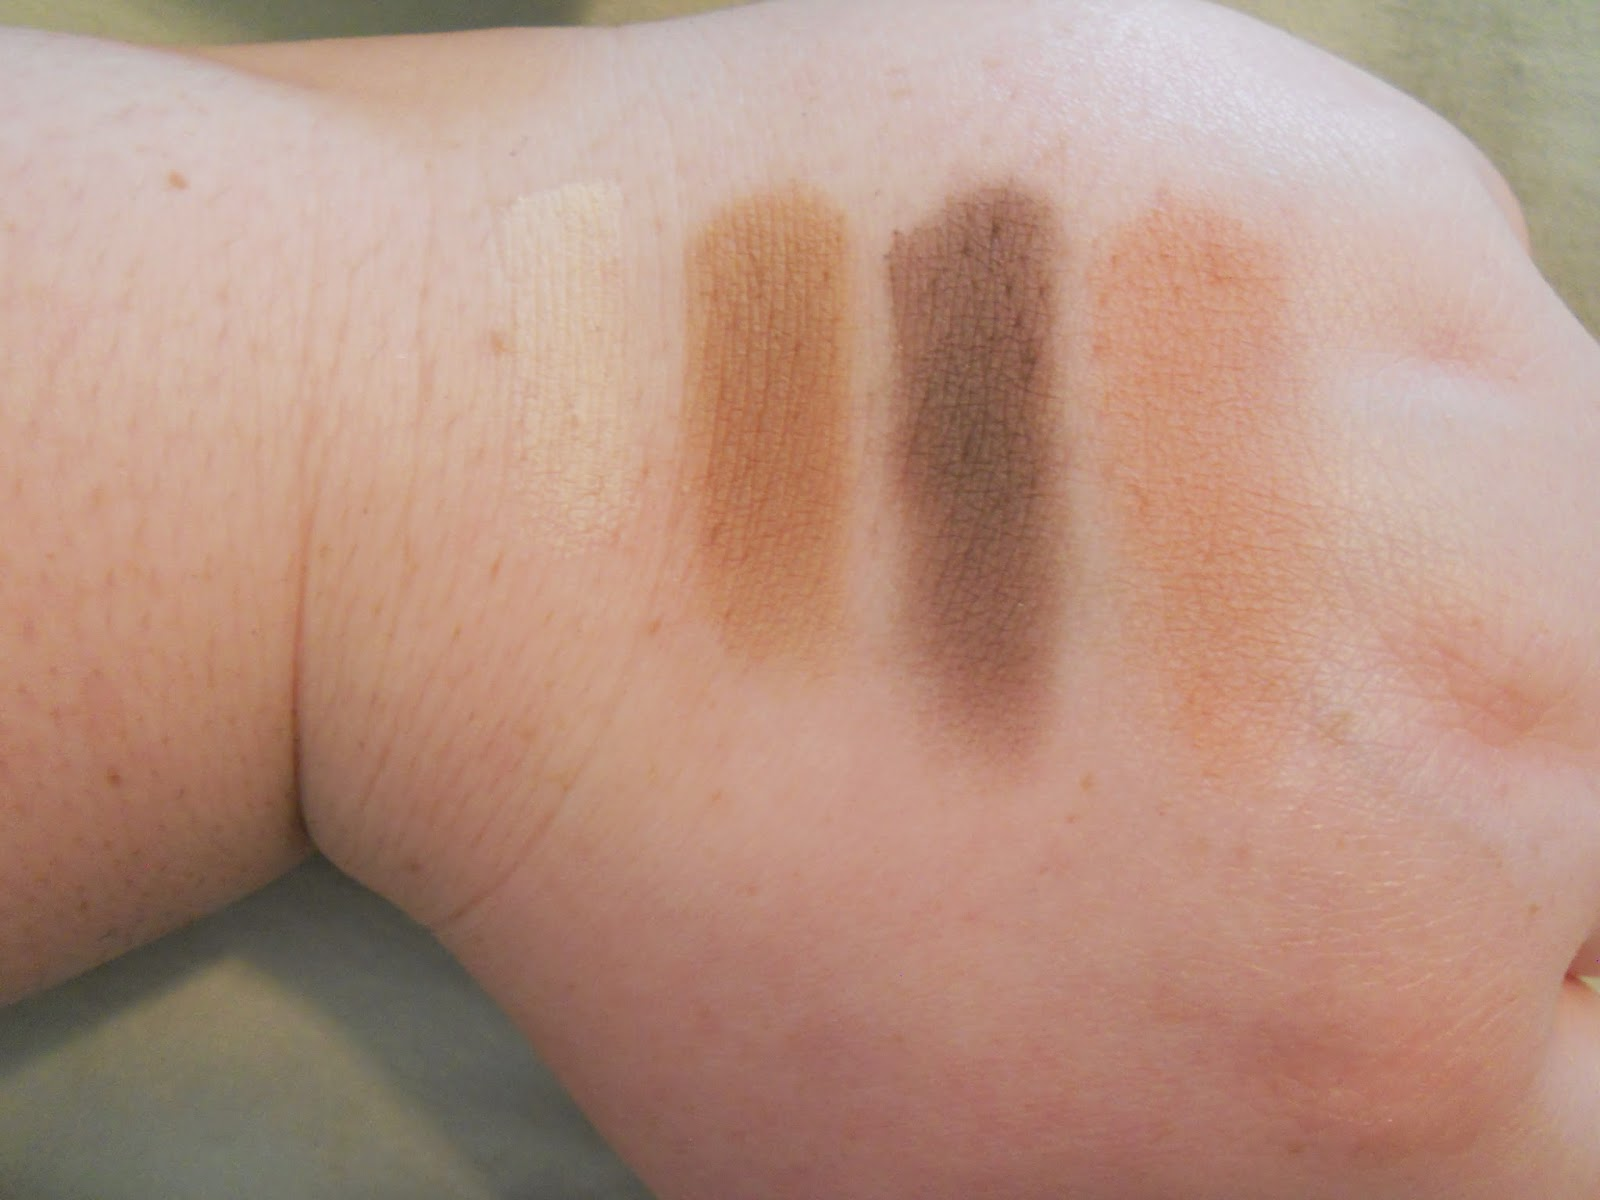 Lorac PRO Palette 2 Swatches - Buff, Lt. Brown, Cool Gray and Nectar